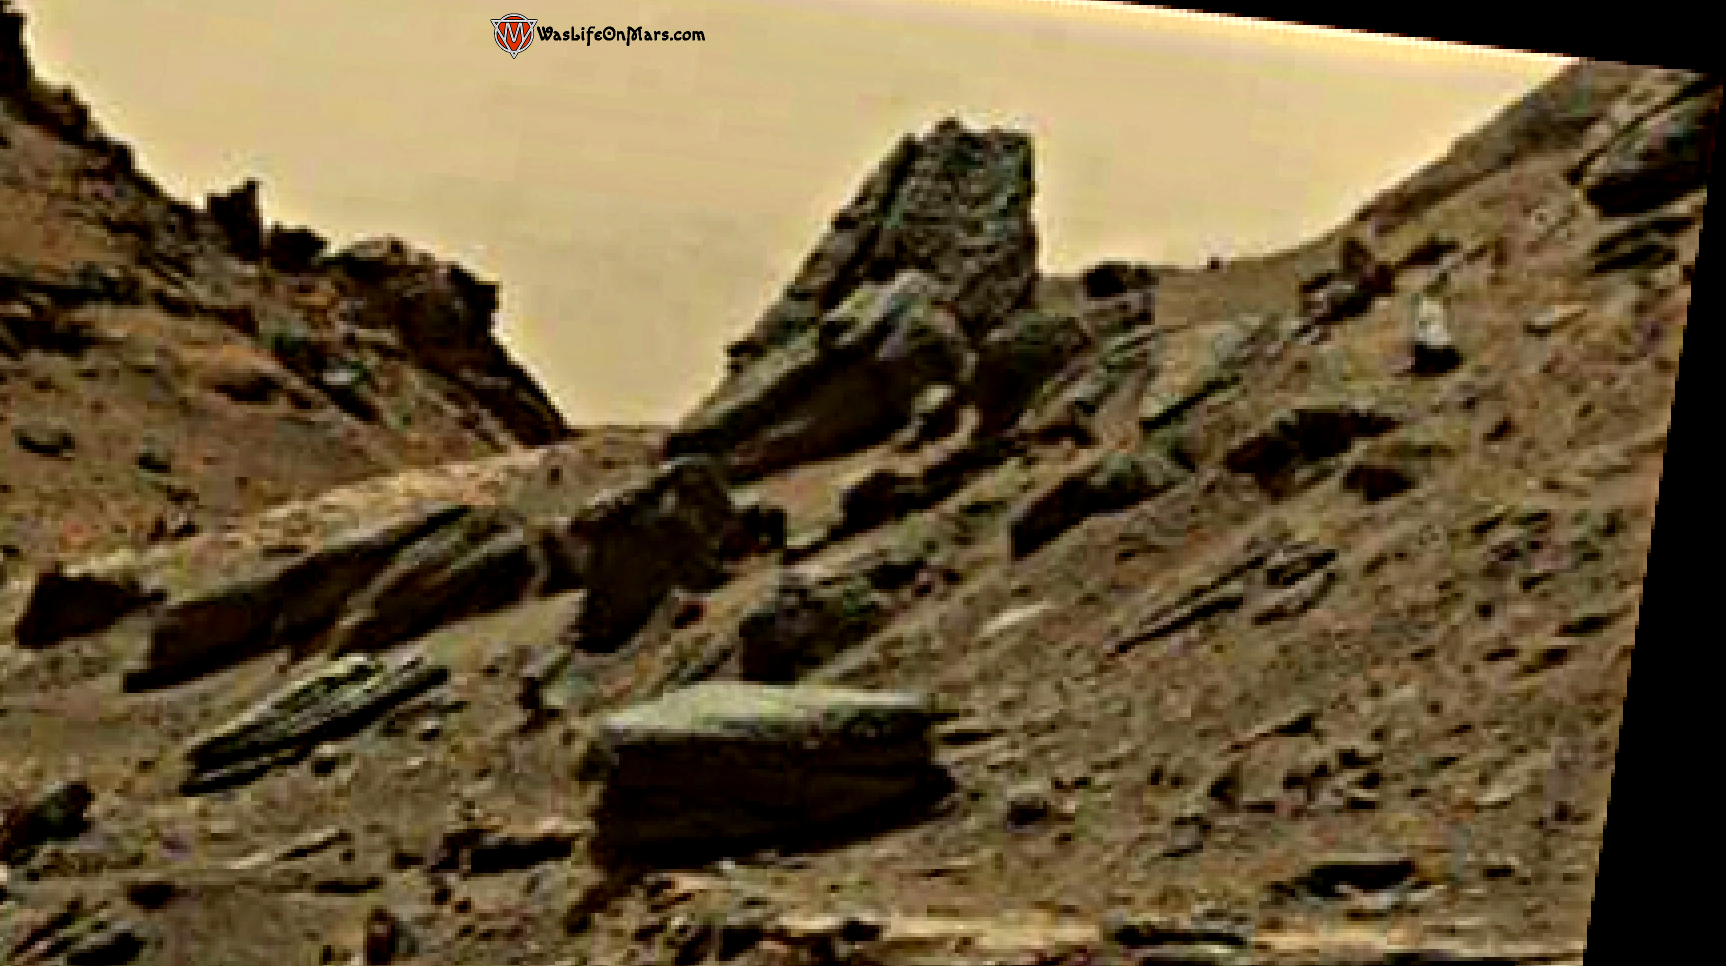 mars sol 1428 anomaly artifacts 4 was life on mars